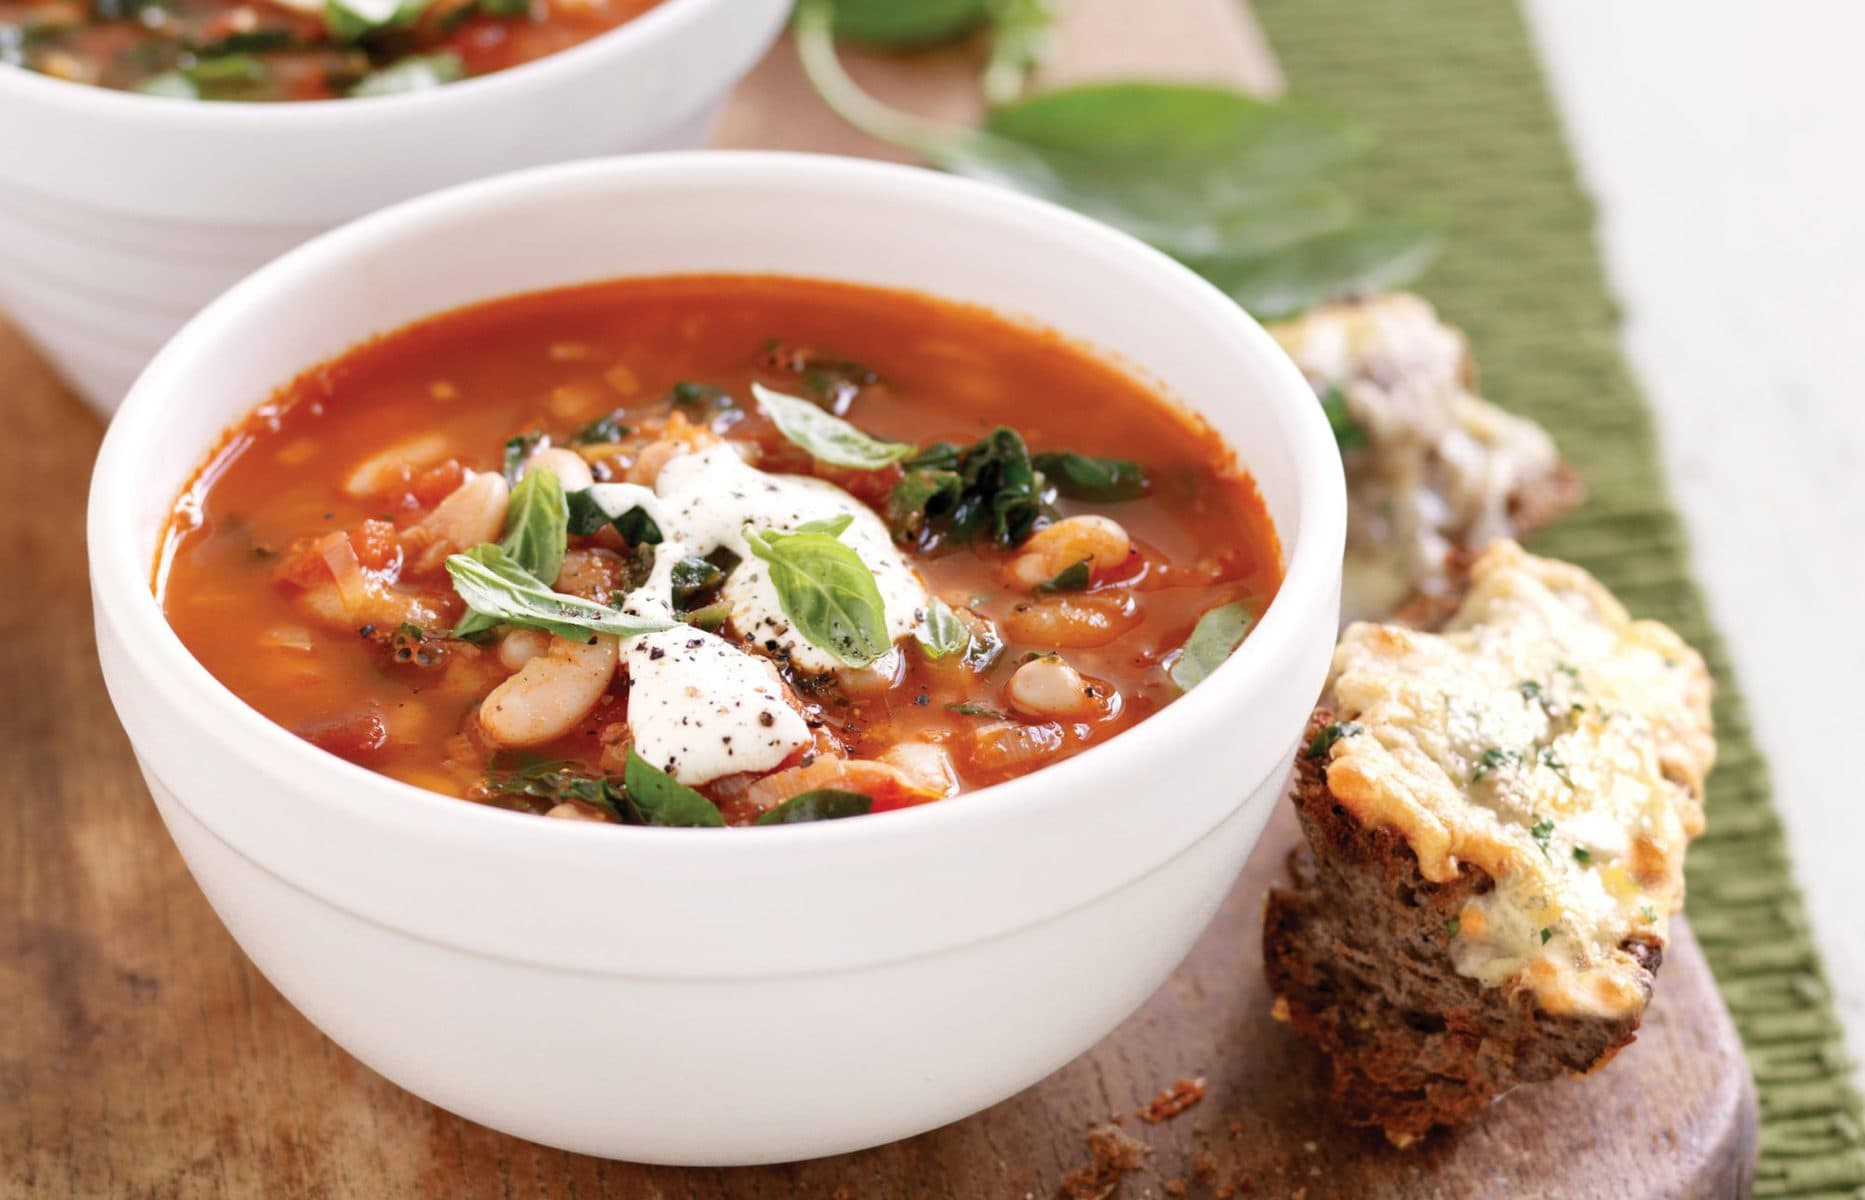 Leek and bean soup with cheesy bread